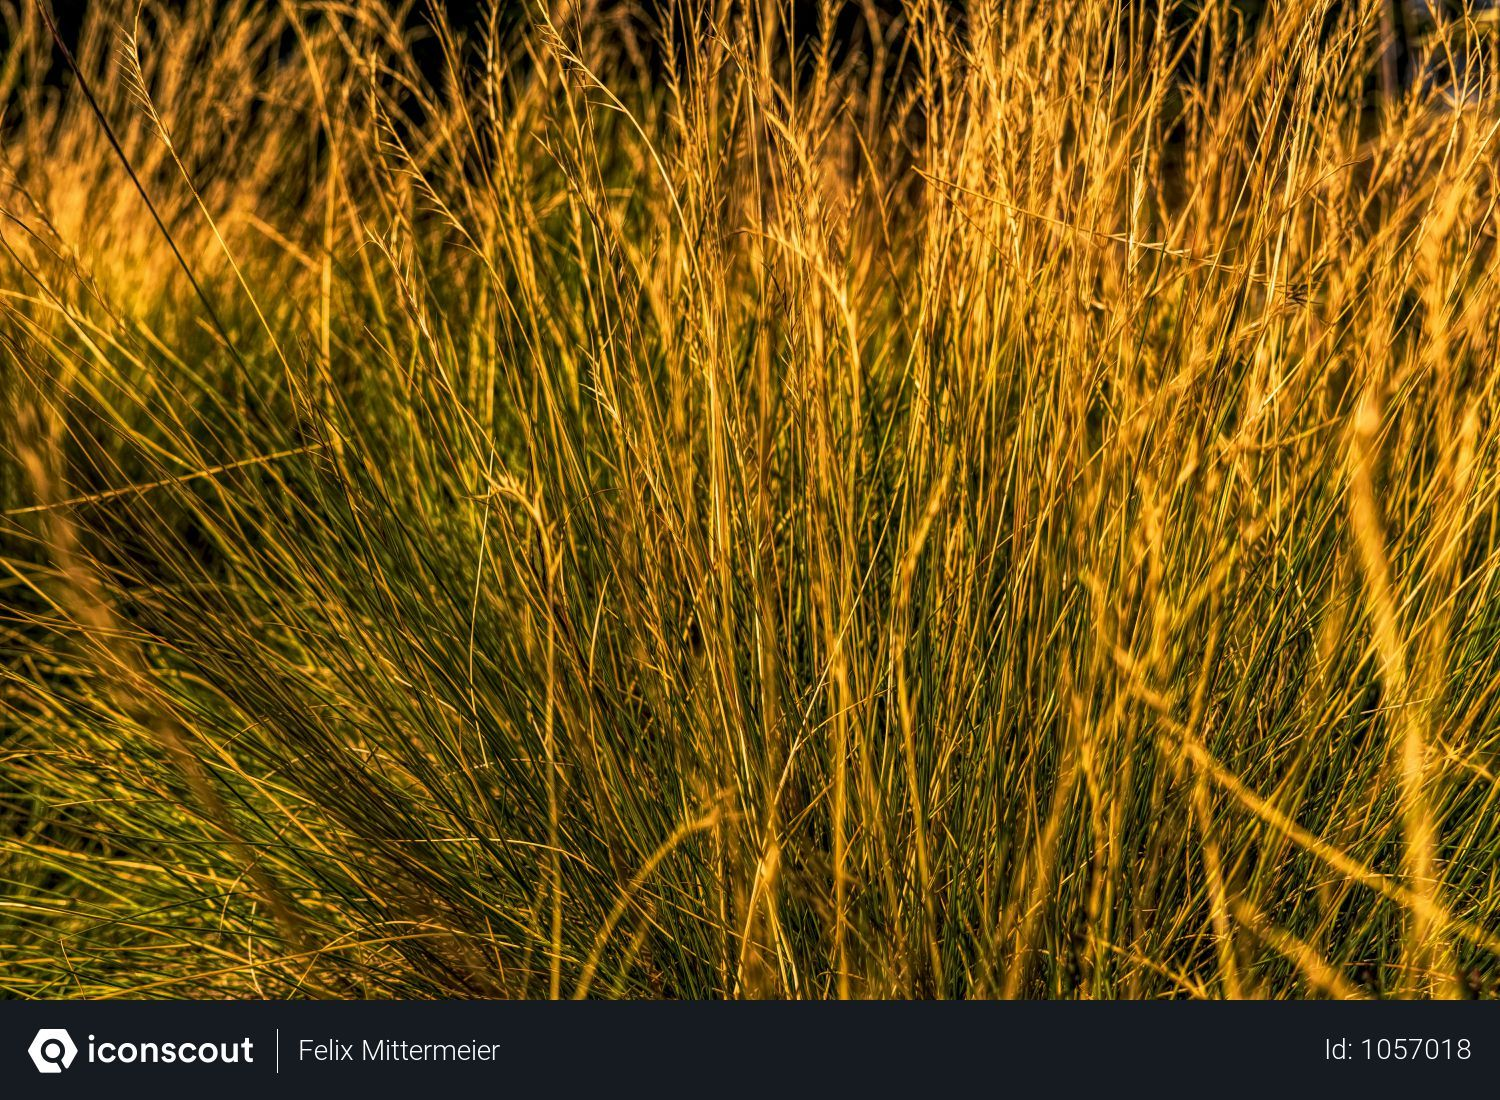 Free Close Up Of Dry Grass With Golden Sun Rays Photo Download In Png Jpg Format Golden Sun Close Up Photo